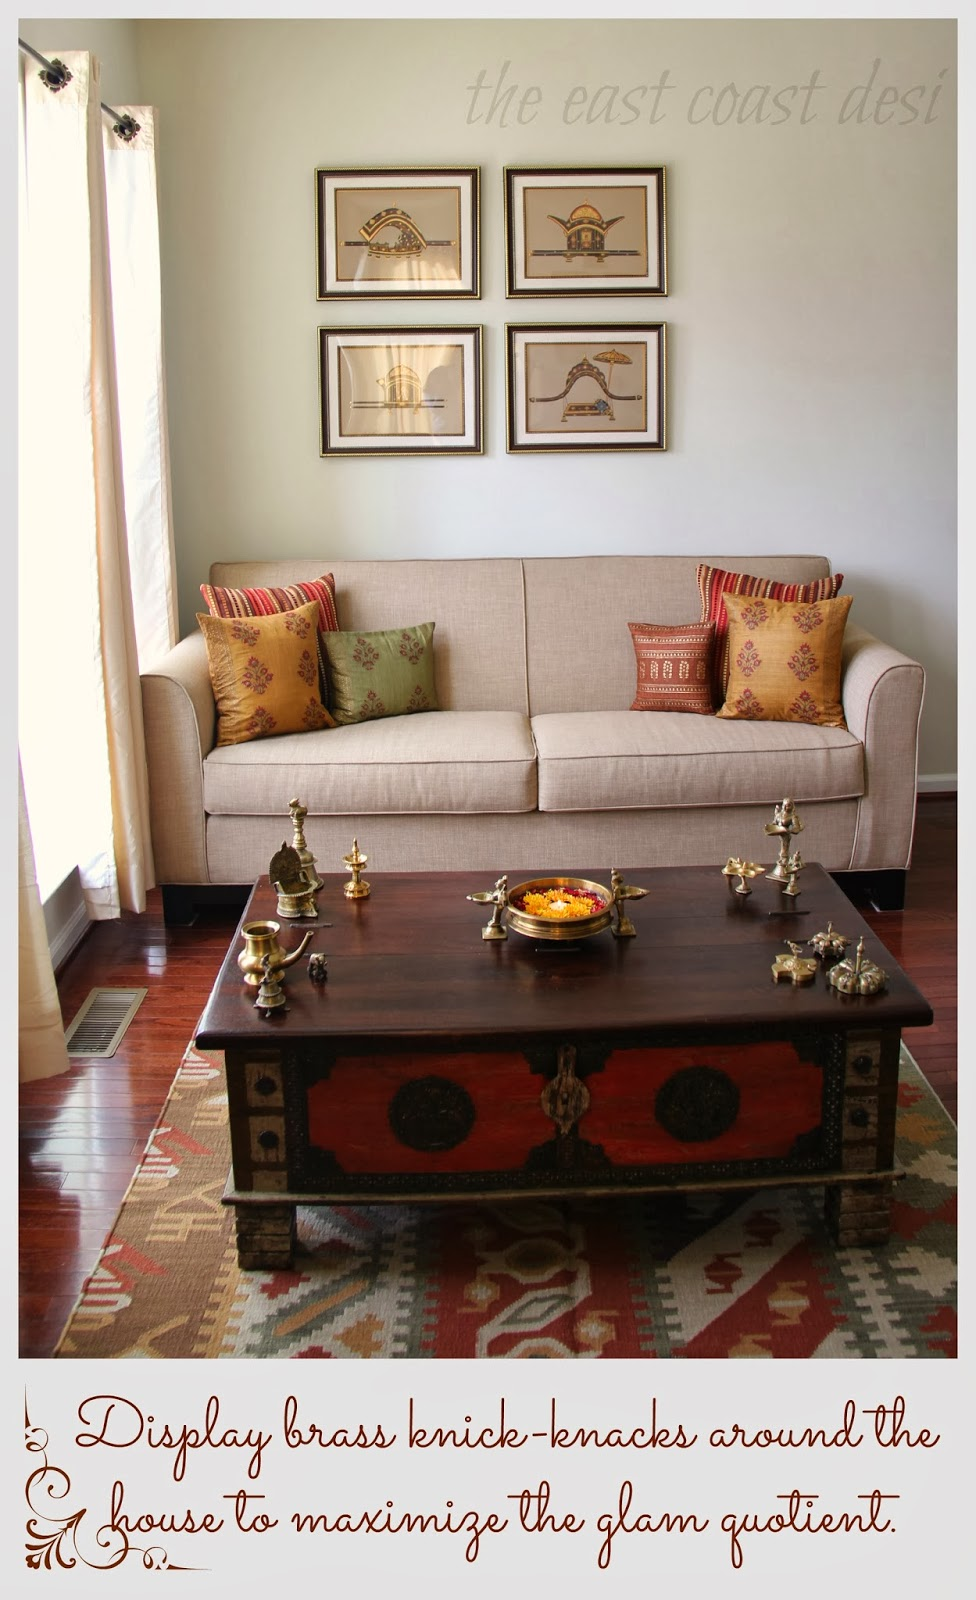 The east coast desi my living room a reflection of india for 007 room decor